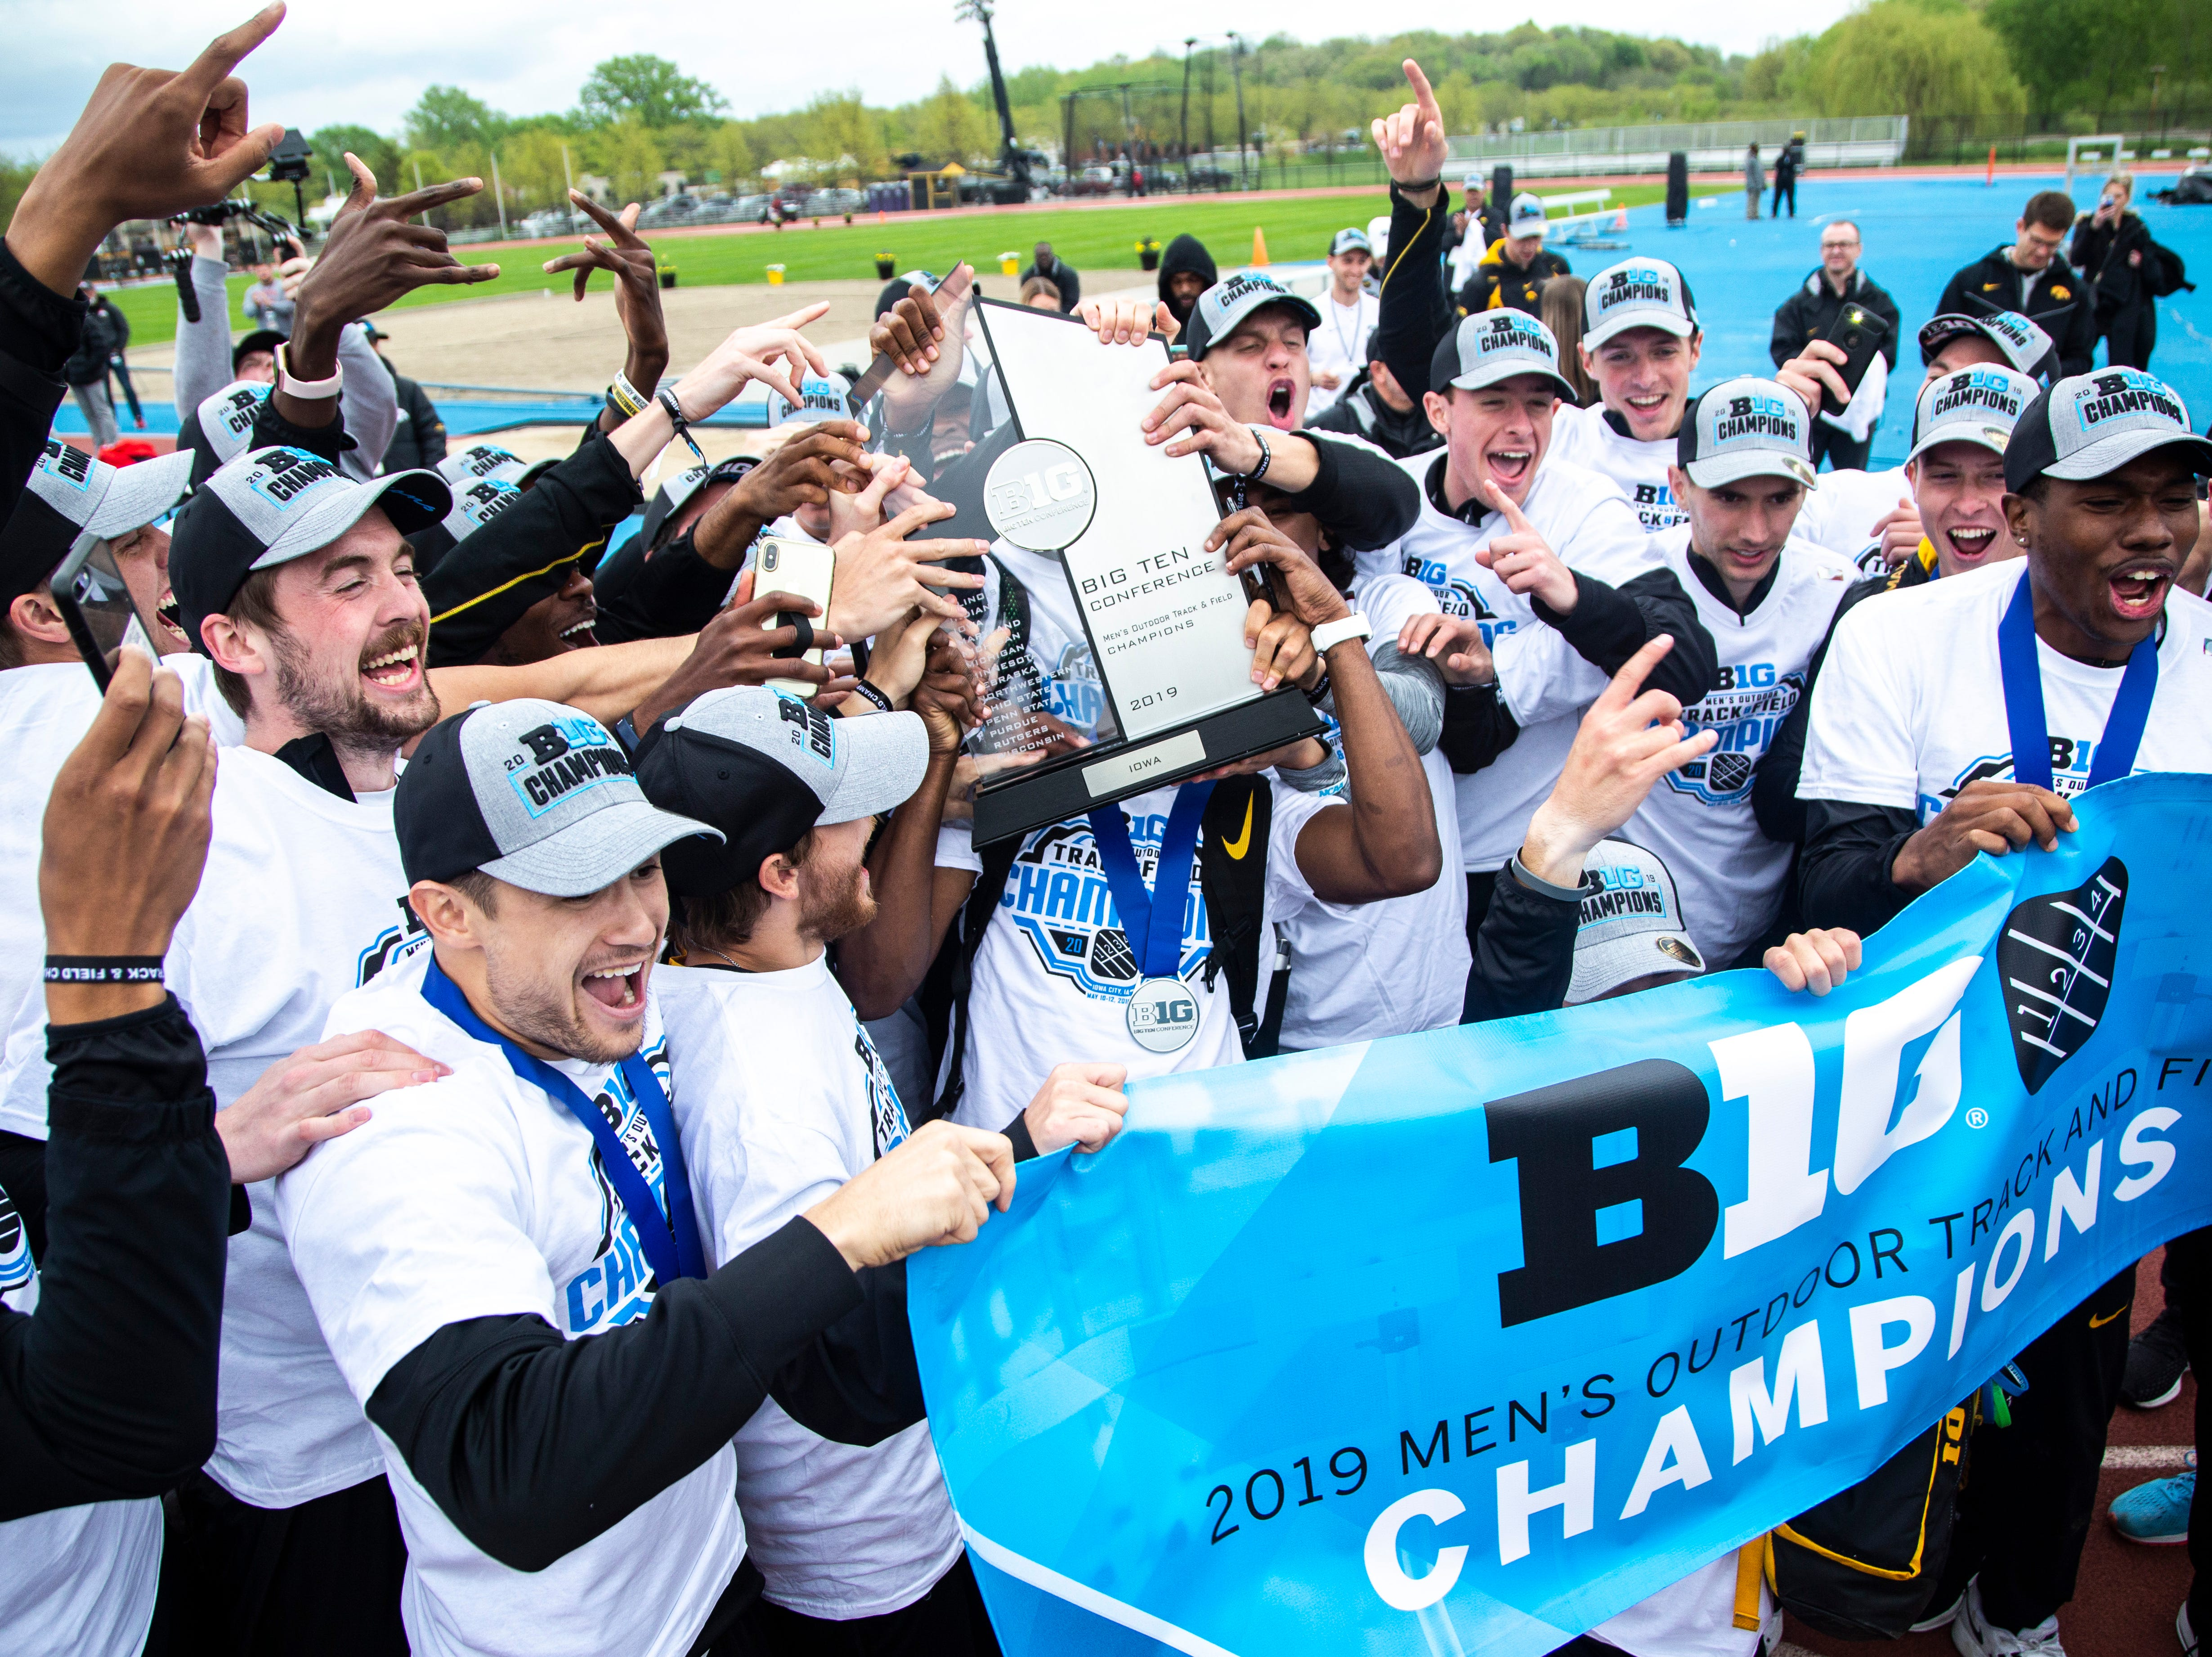 Iowa Hawkeyes men celebrate with the Big Ten Championship during the final day of Big Ten track and field outdoor championships, Sunday, May 12, 2019, at Francis X. Cretzmeyer Track on the University of Iowa campus in Iowa City, Iowa.